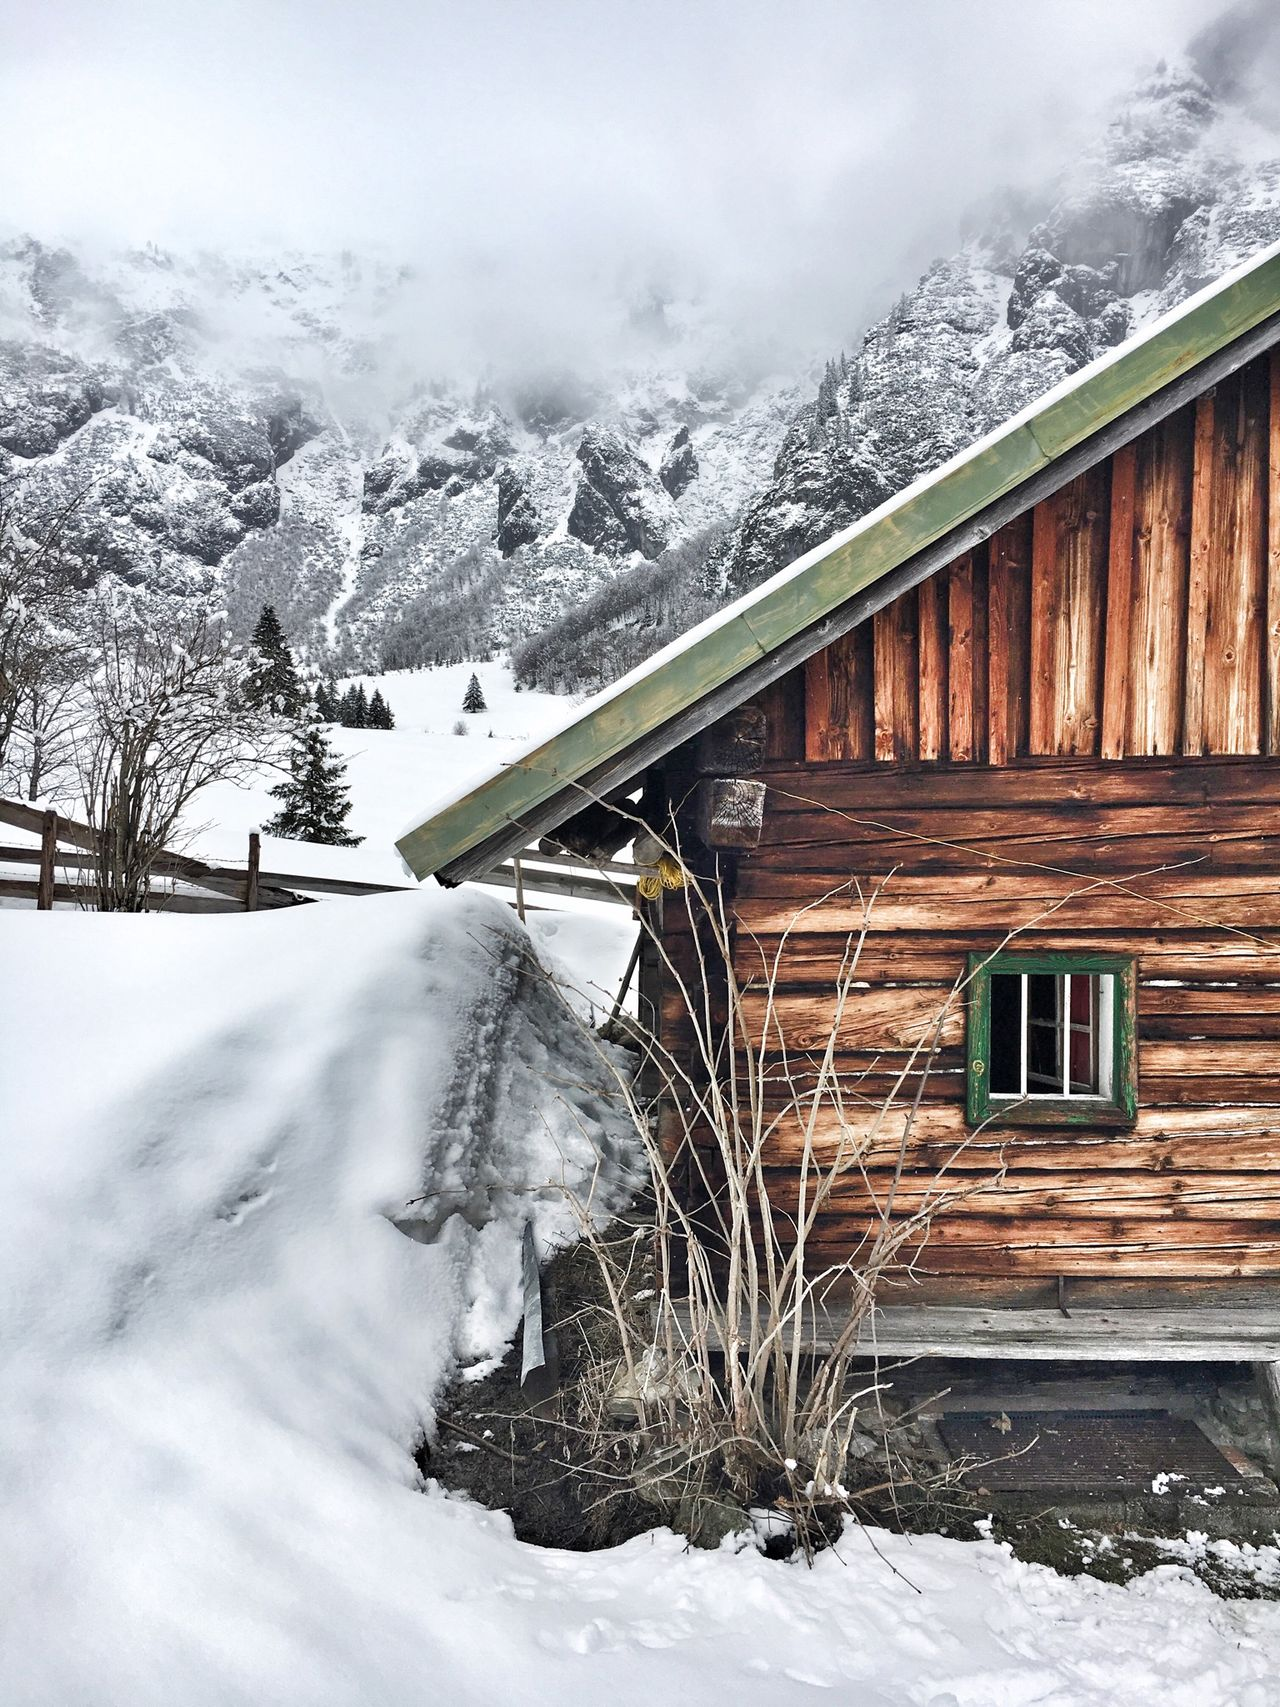 Winter Snow Hut Alps Austria Salzburg Wood Nature Landscspe Mountains